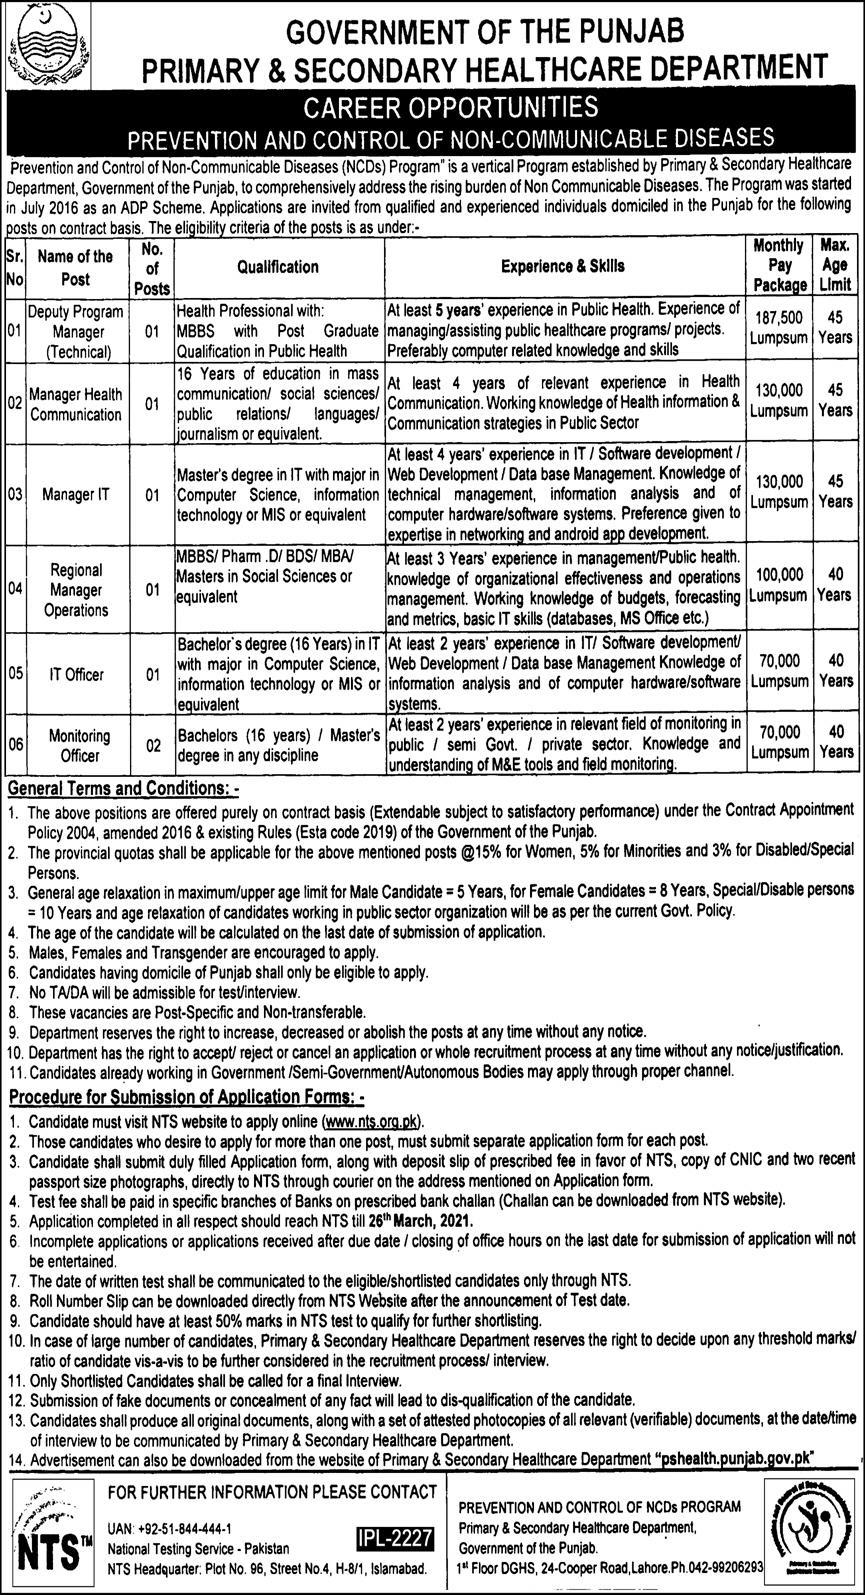 Primary and Secondary Healthcare Department Punjab Jobs 2021 via NTS | Latest Jobs